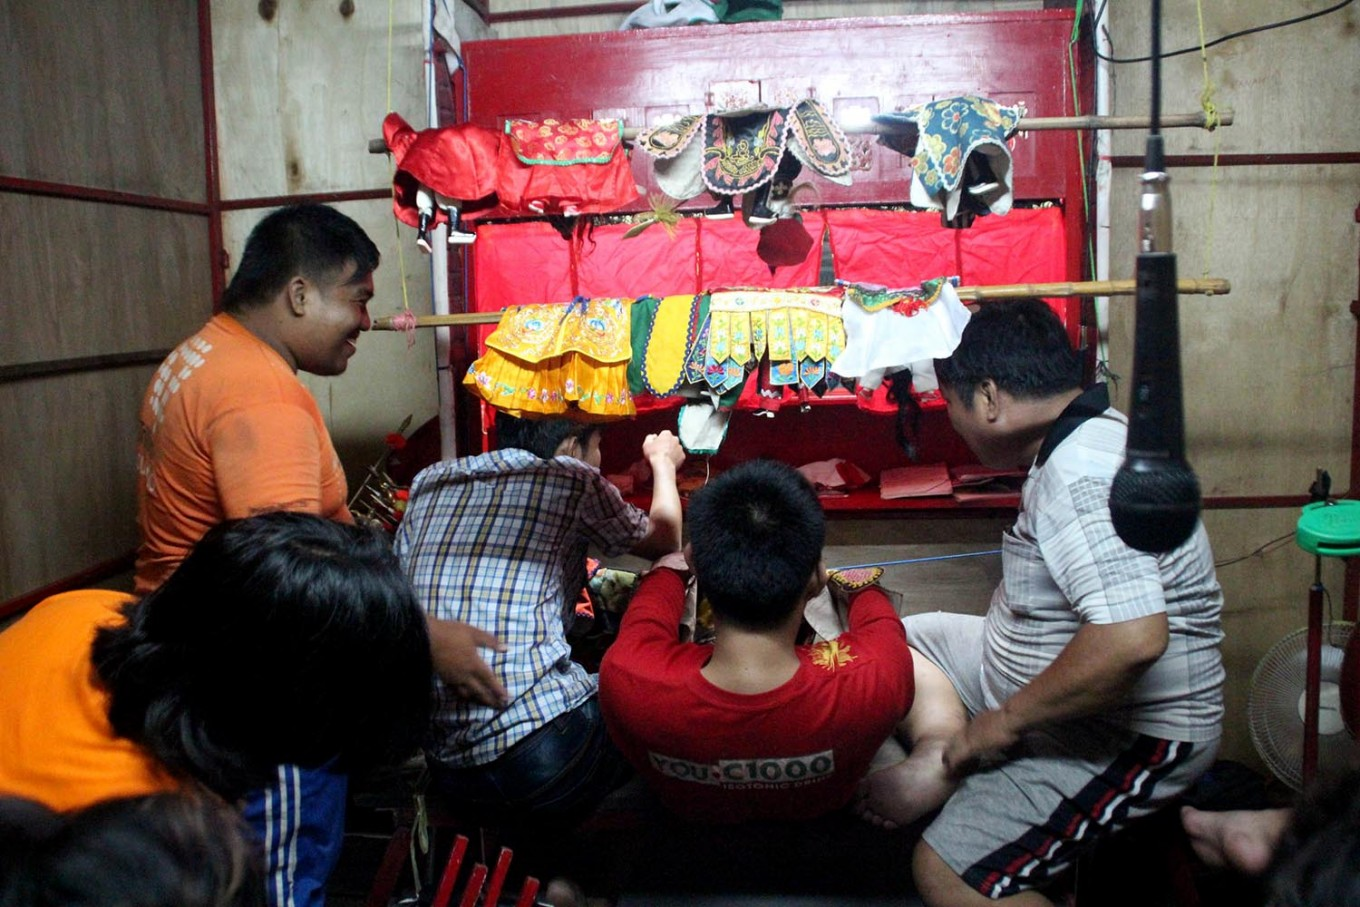 Puppeteer Thio Hauw Lie (right) and his team present the Potehi puppet show. JP/Suherdjoko